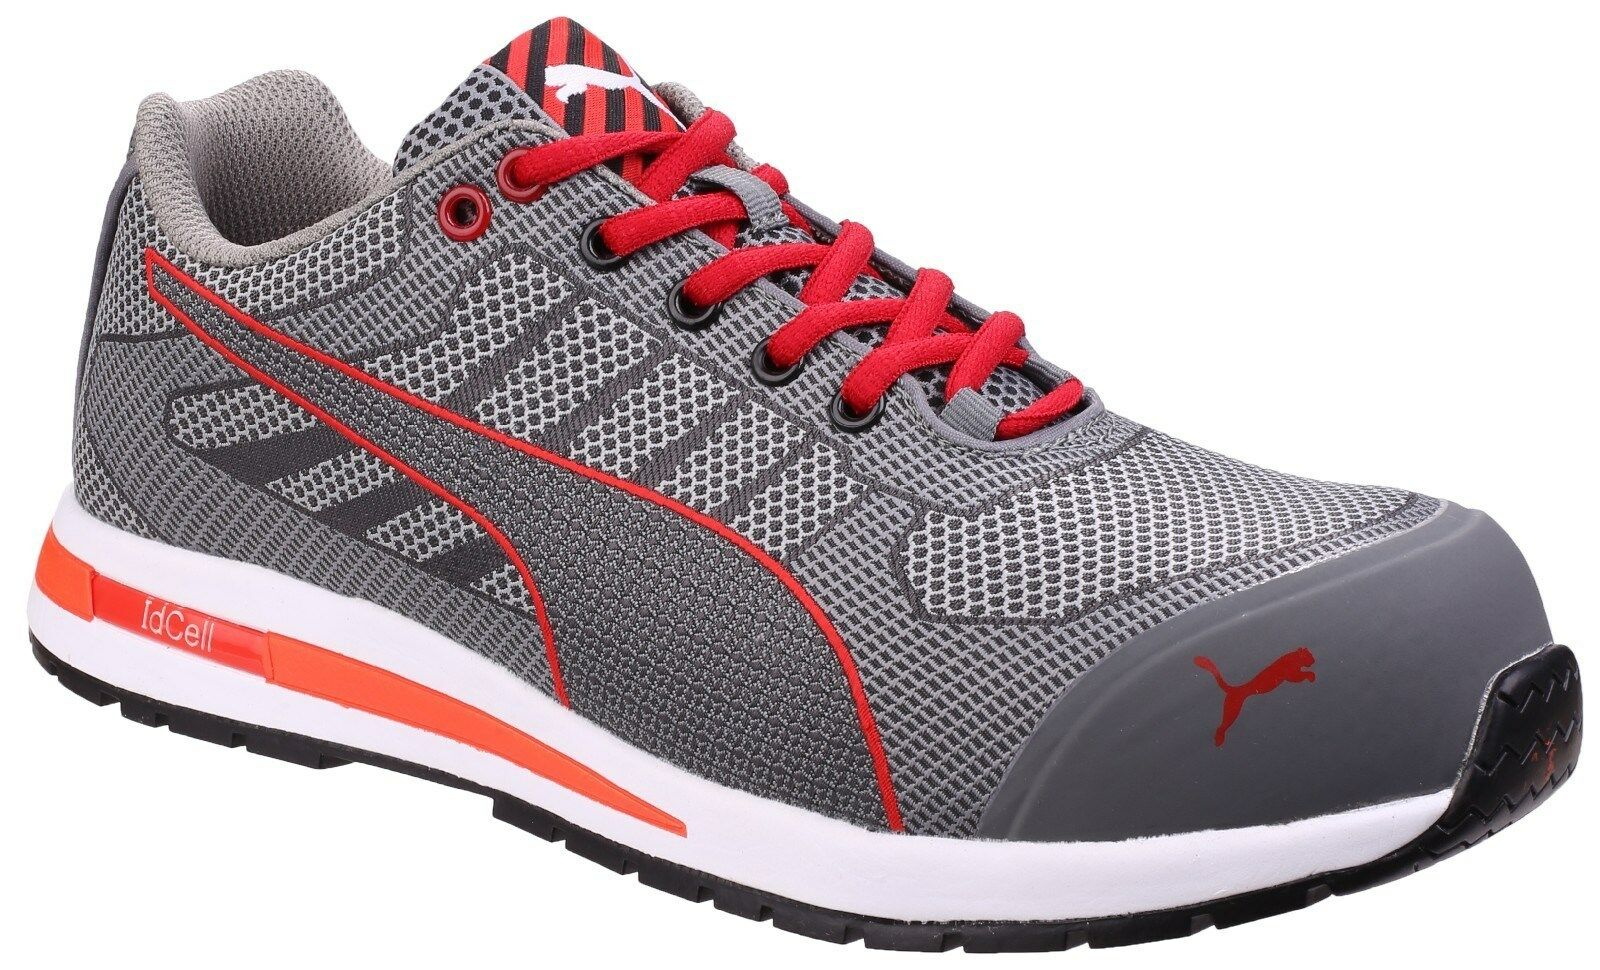 PUMA Safety Elevate Knit Low Composite